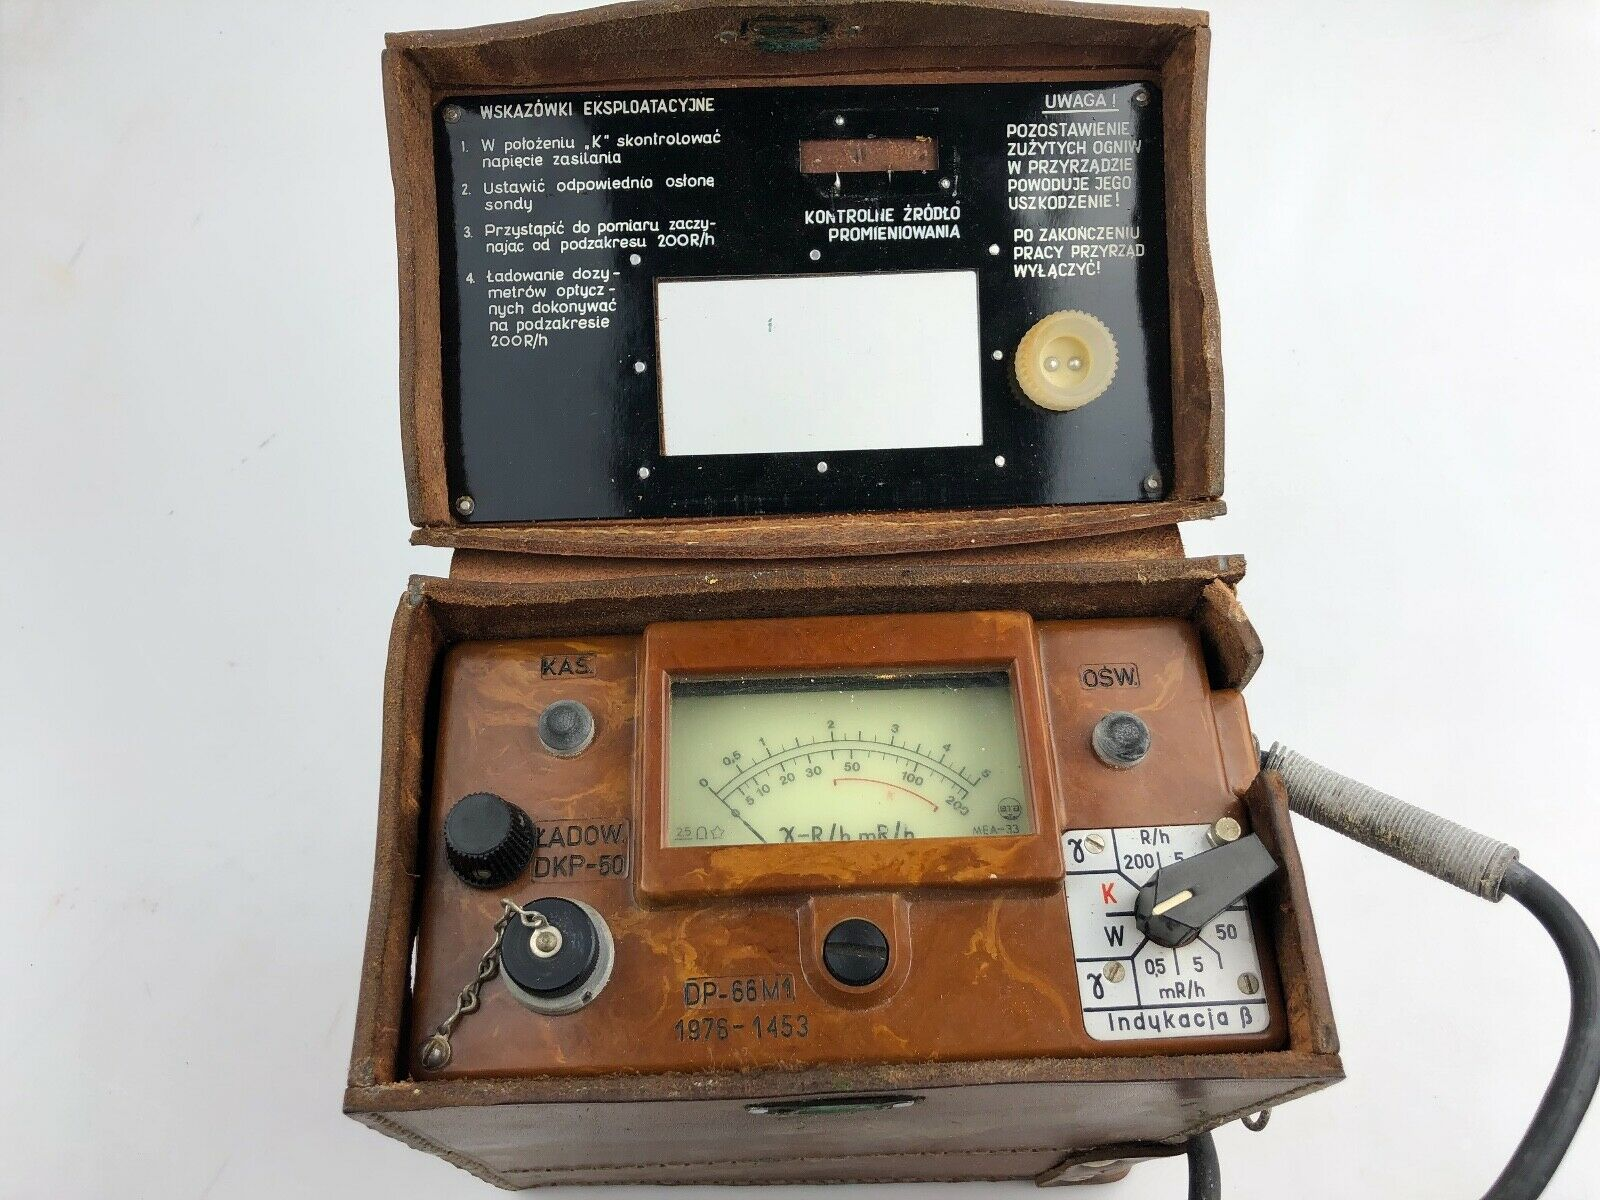 s l1600 - DP66 MILITARY RADIATION DETECTOR GEIGER COUNTER WITH CASE VINTAGE